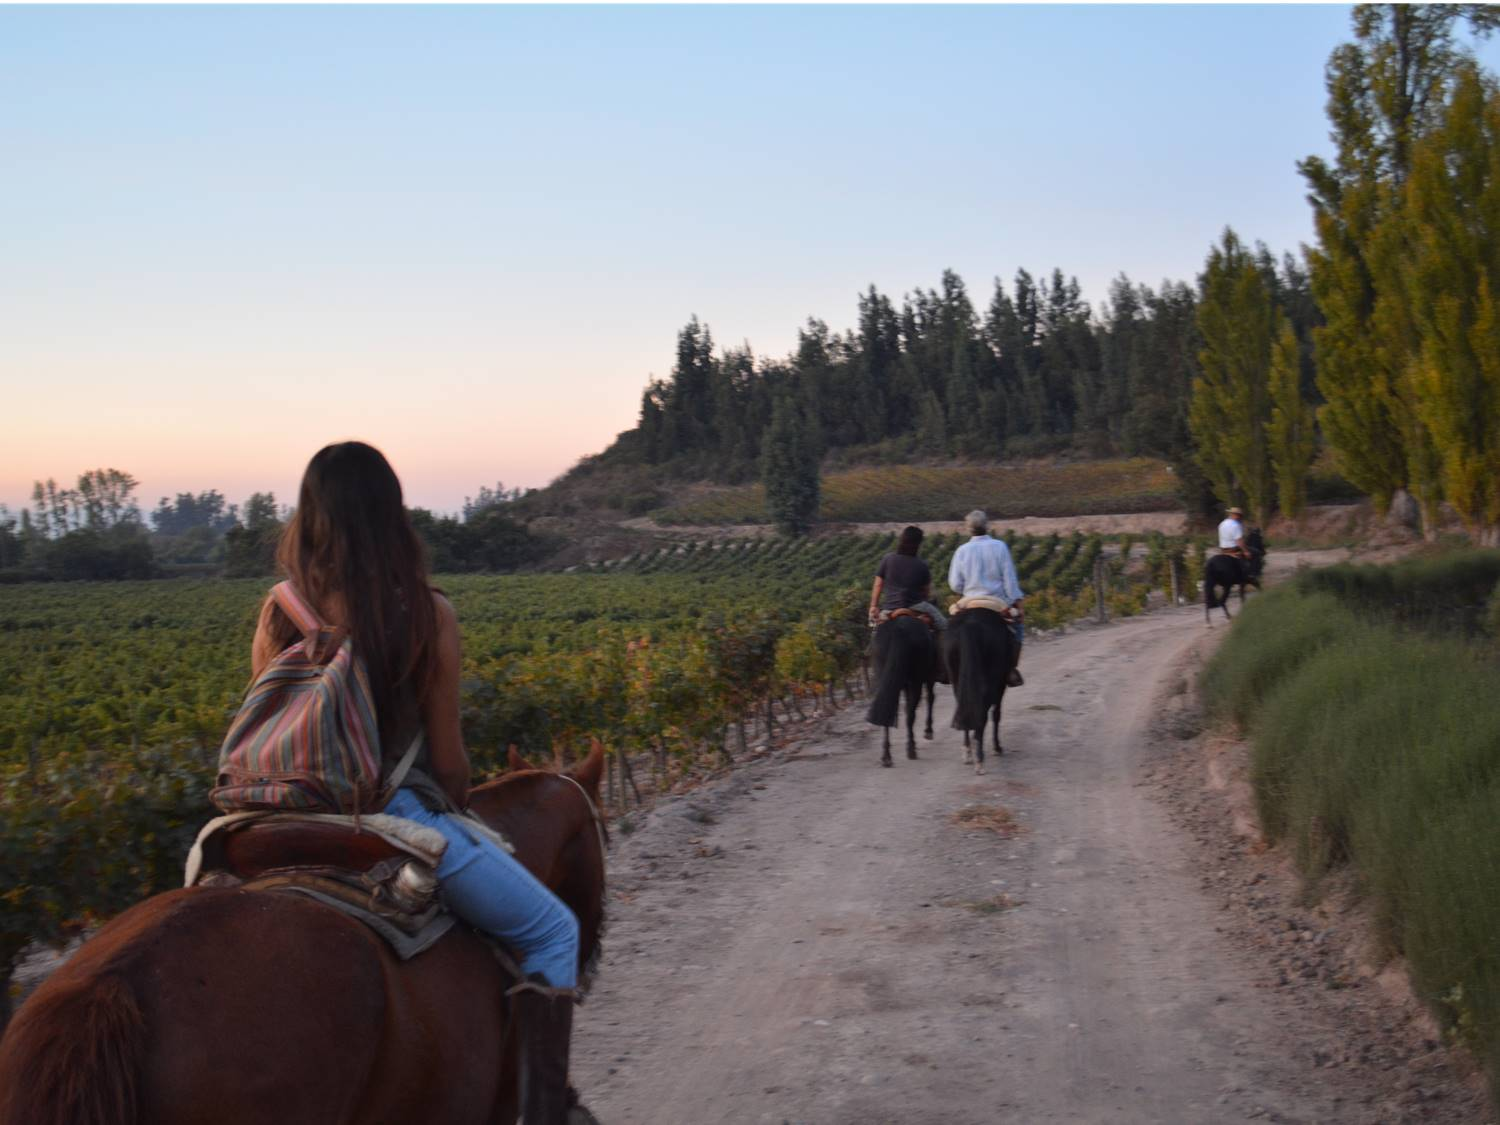 Maipo, a wine valley full of interesting contrasts